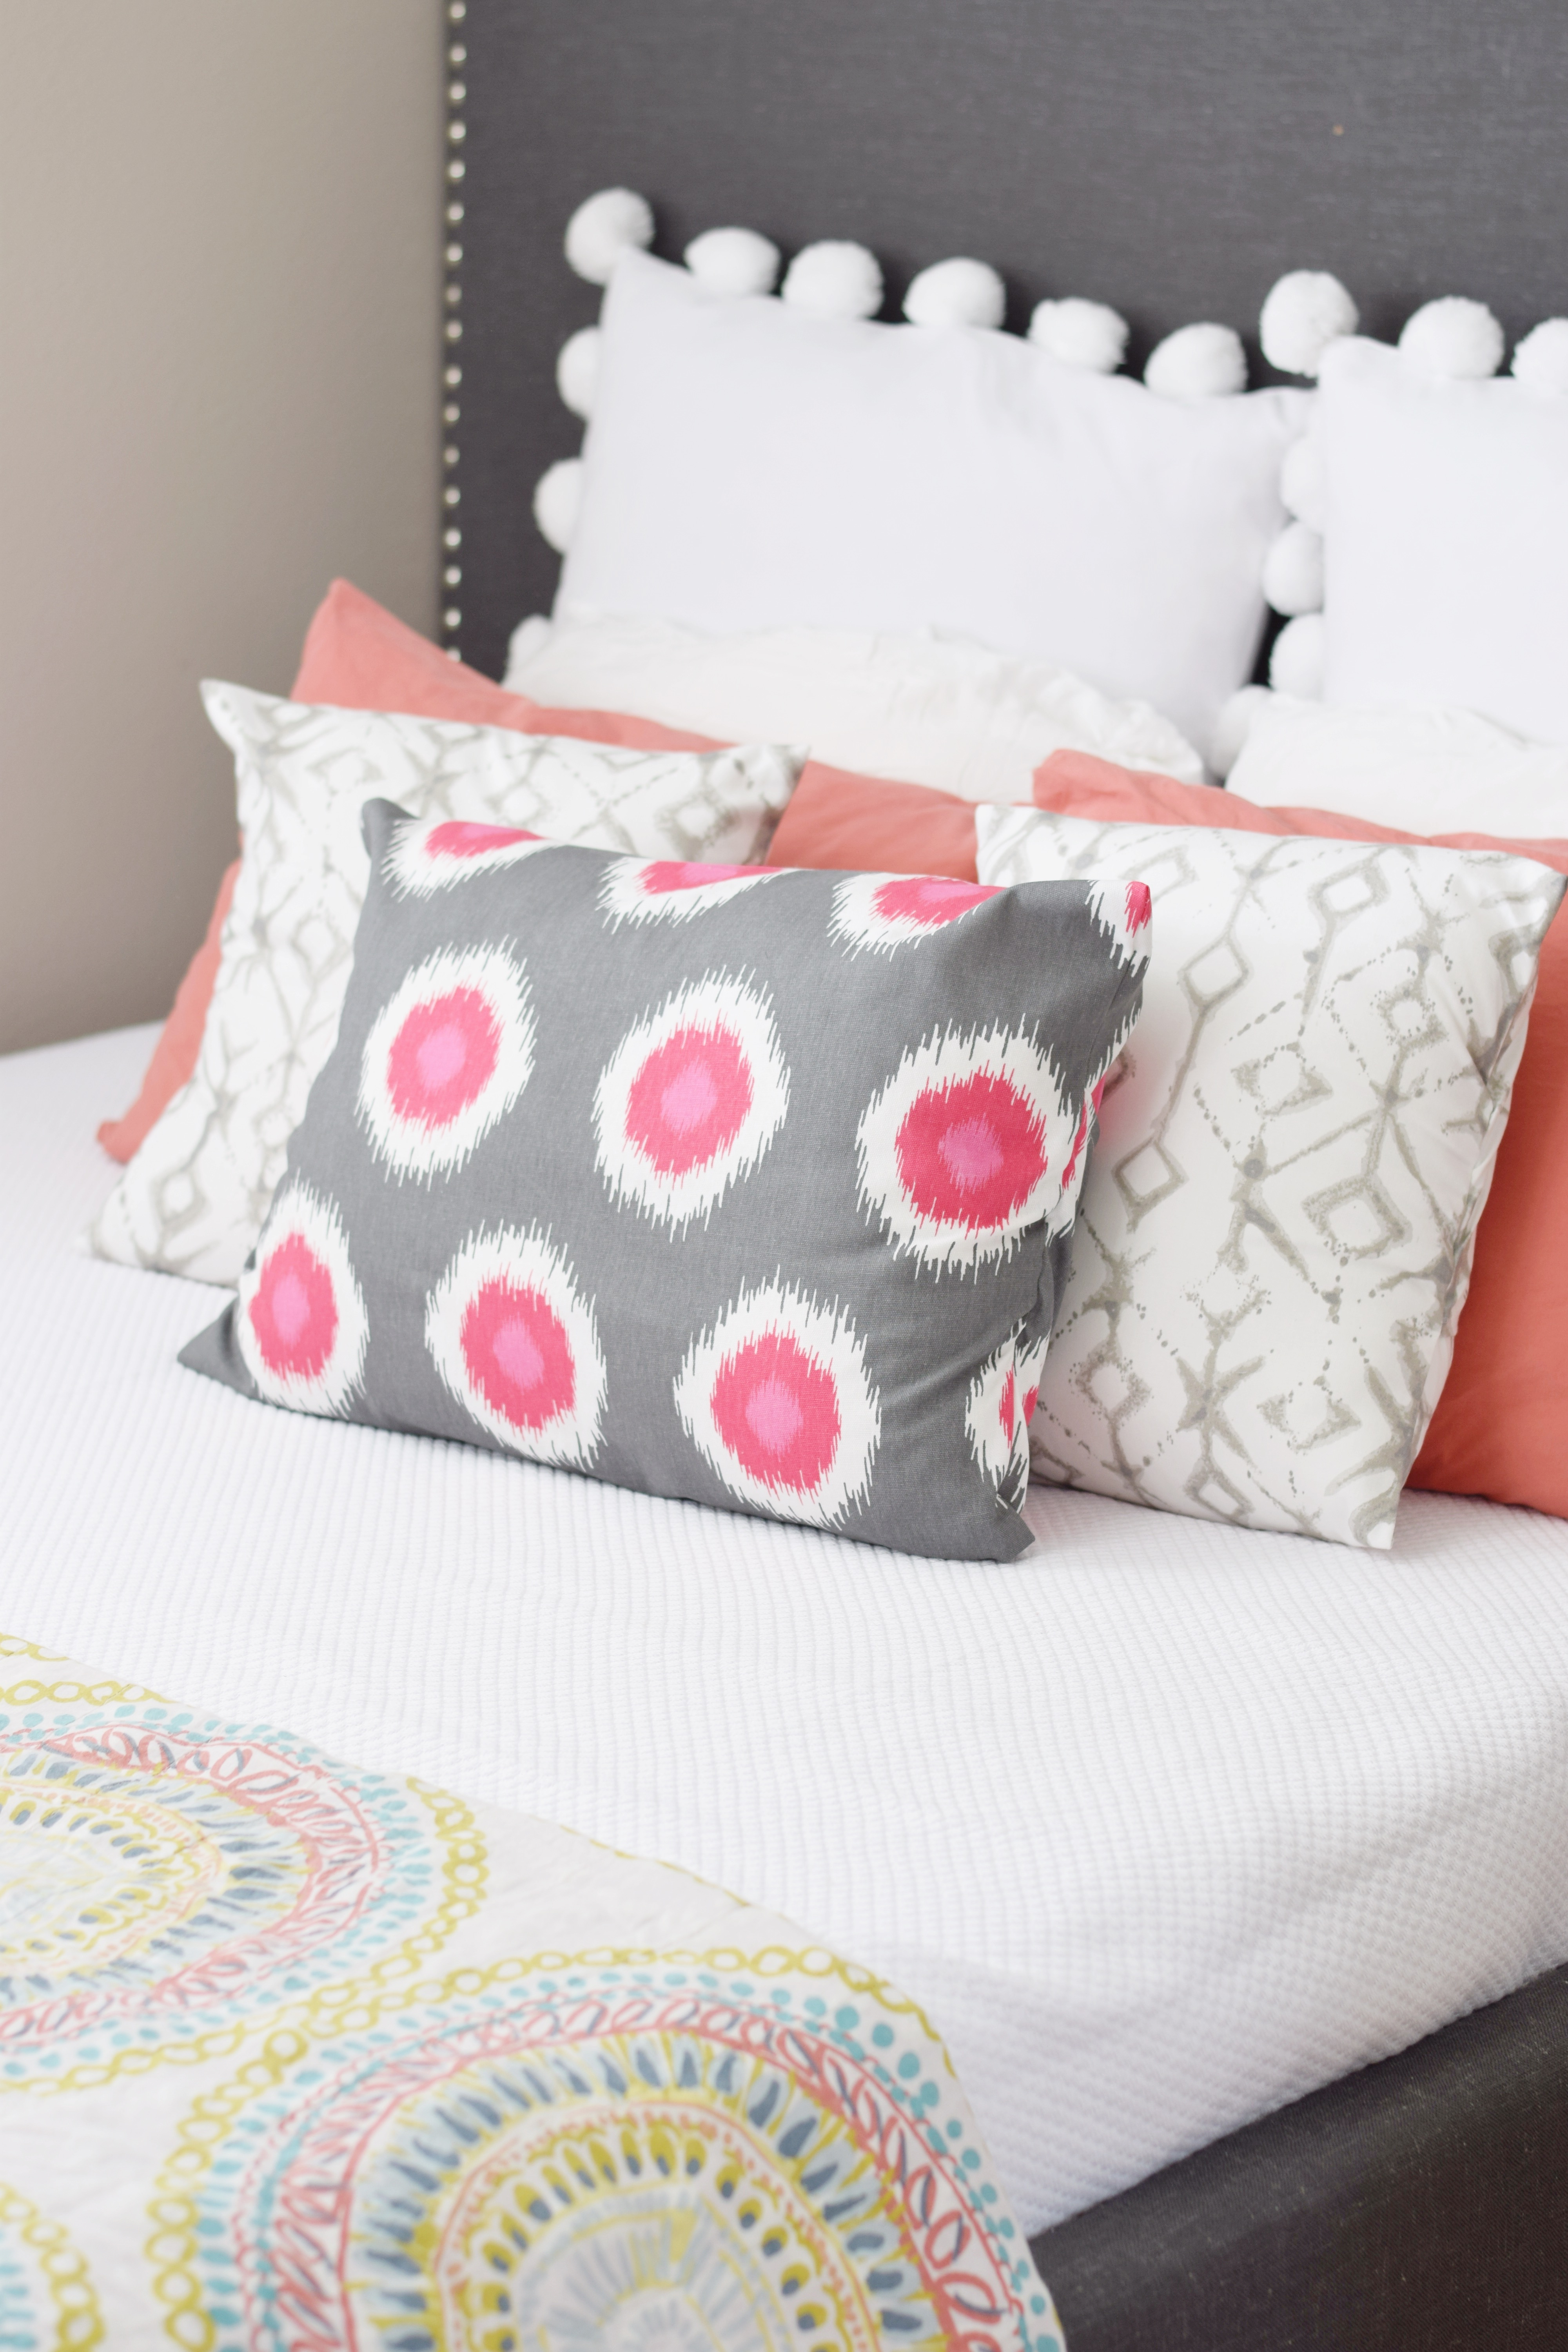 Tropical Guest Bedroom - Pom Pom Pillow - Pink Polka Dot Pillow - Grey Headboard - Hawaiian Home Feature on Apartment Therapy - CommuniKait